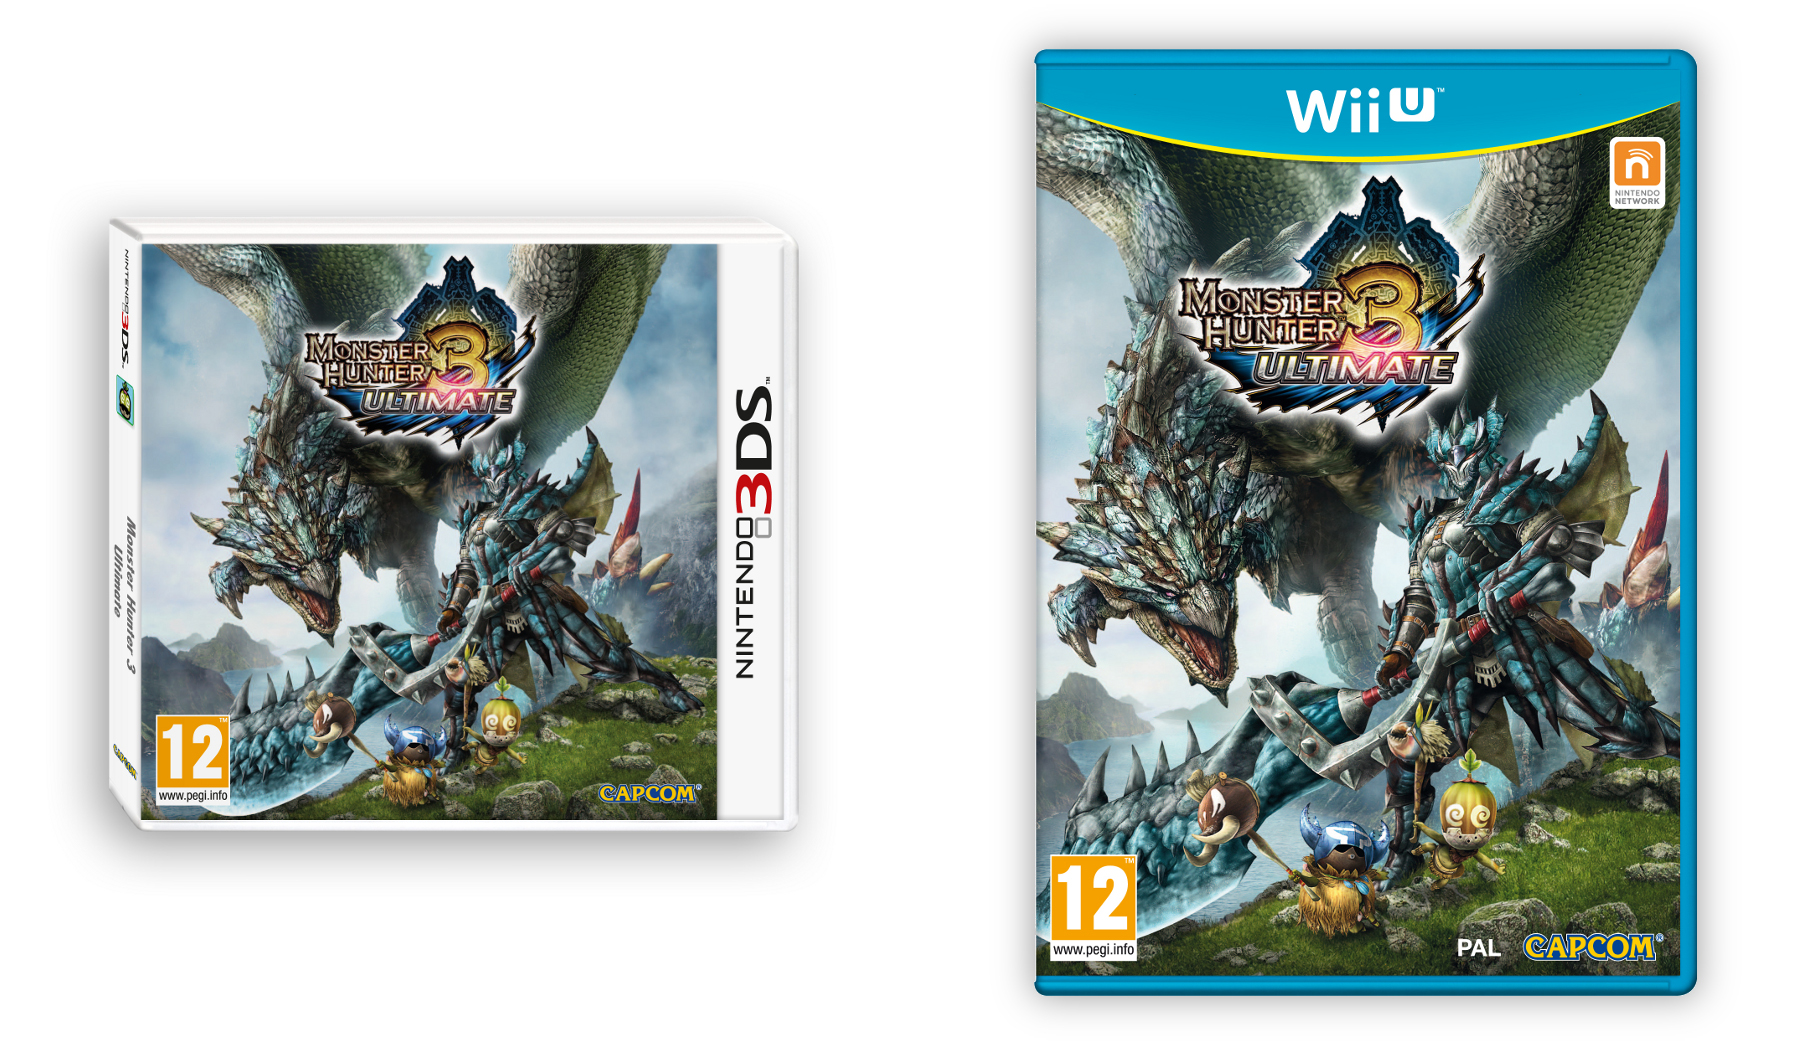 Monster-Hunter-3-Ultimate-3DS-Wii-U-Boxart